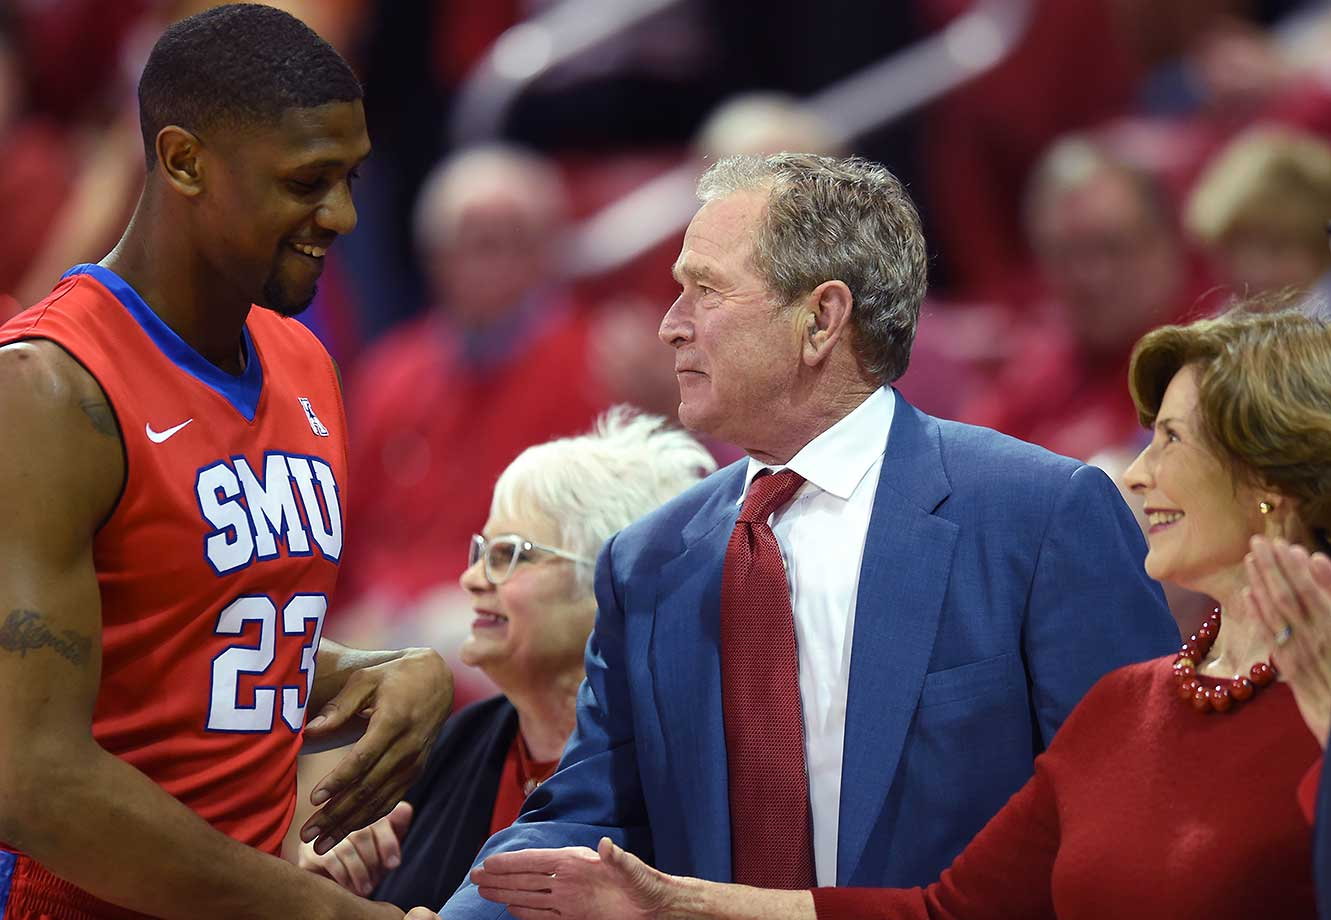 SMU's Jordan Tolbert greets former President George W. Bush and Laura Bush in Dallas.